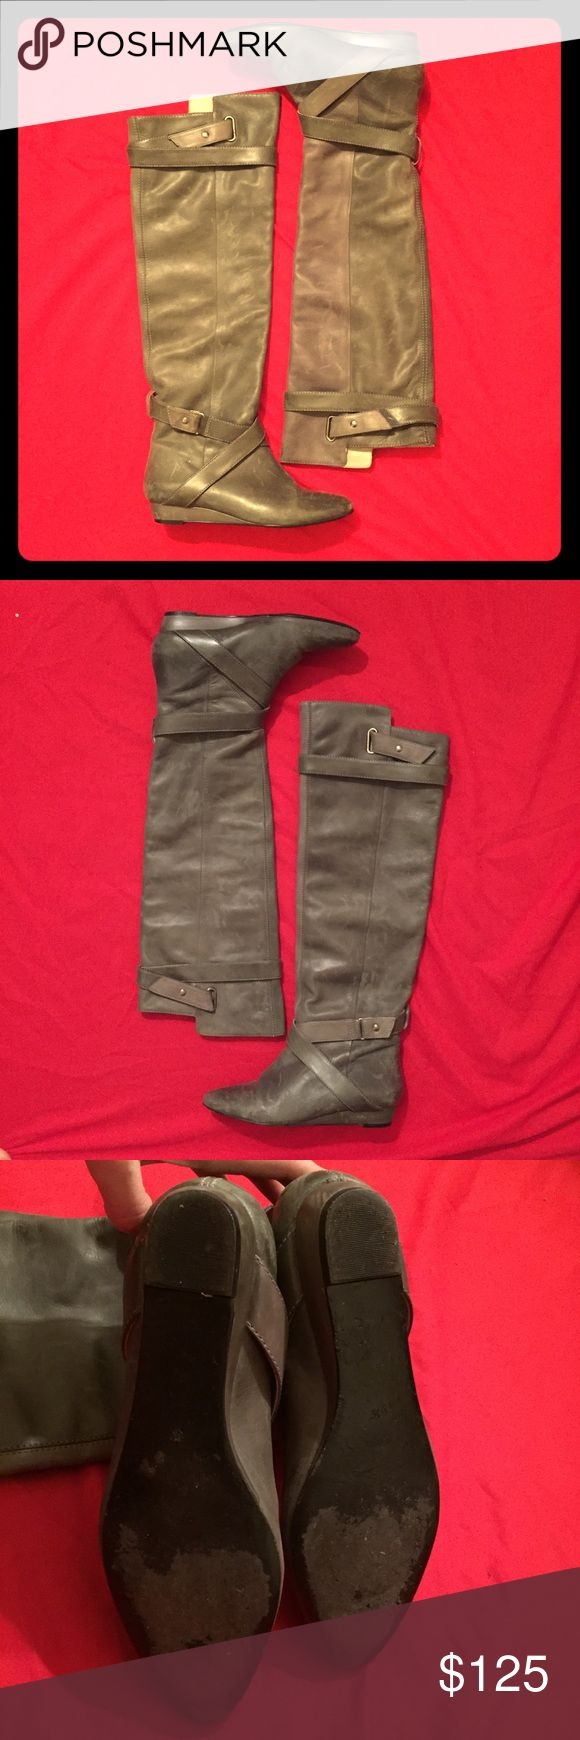 Pour La Victoire Dahlia Over the knee leather boot Good used condition. Scuffs on the leather but no dirt. Velcro ties so you can adjust and fold over. All leather. Wear is on soles but even that's not too bad- they can be worn for years to come! Pour La Victoire Shoes Over the Knee Boots